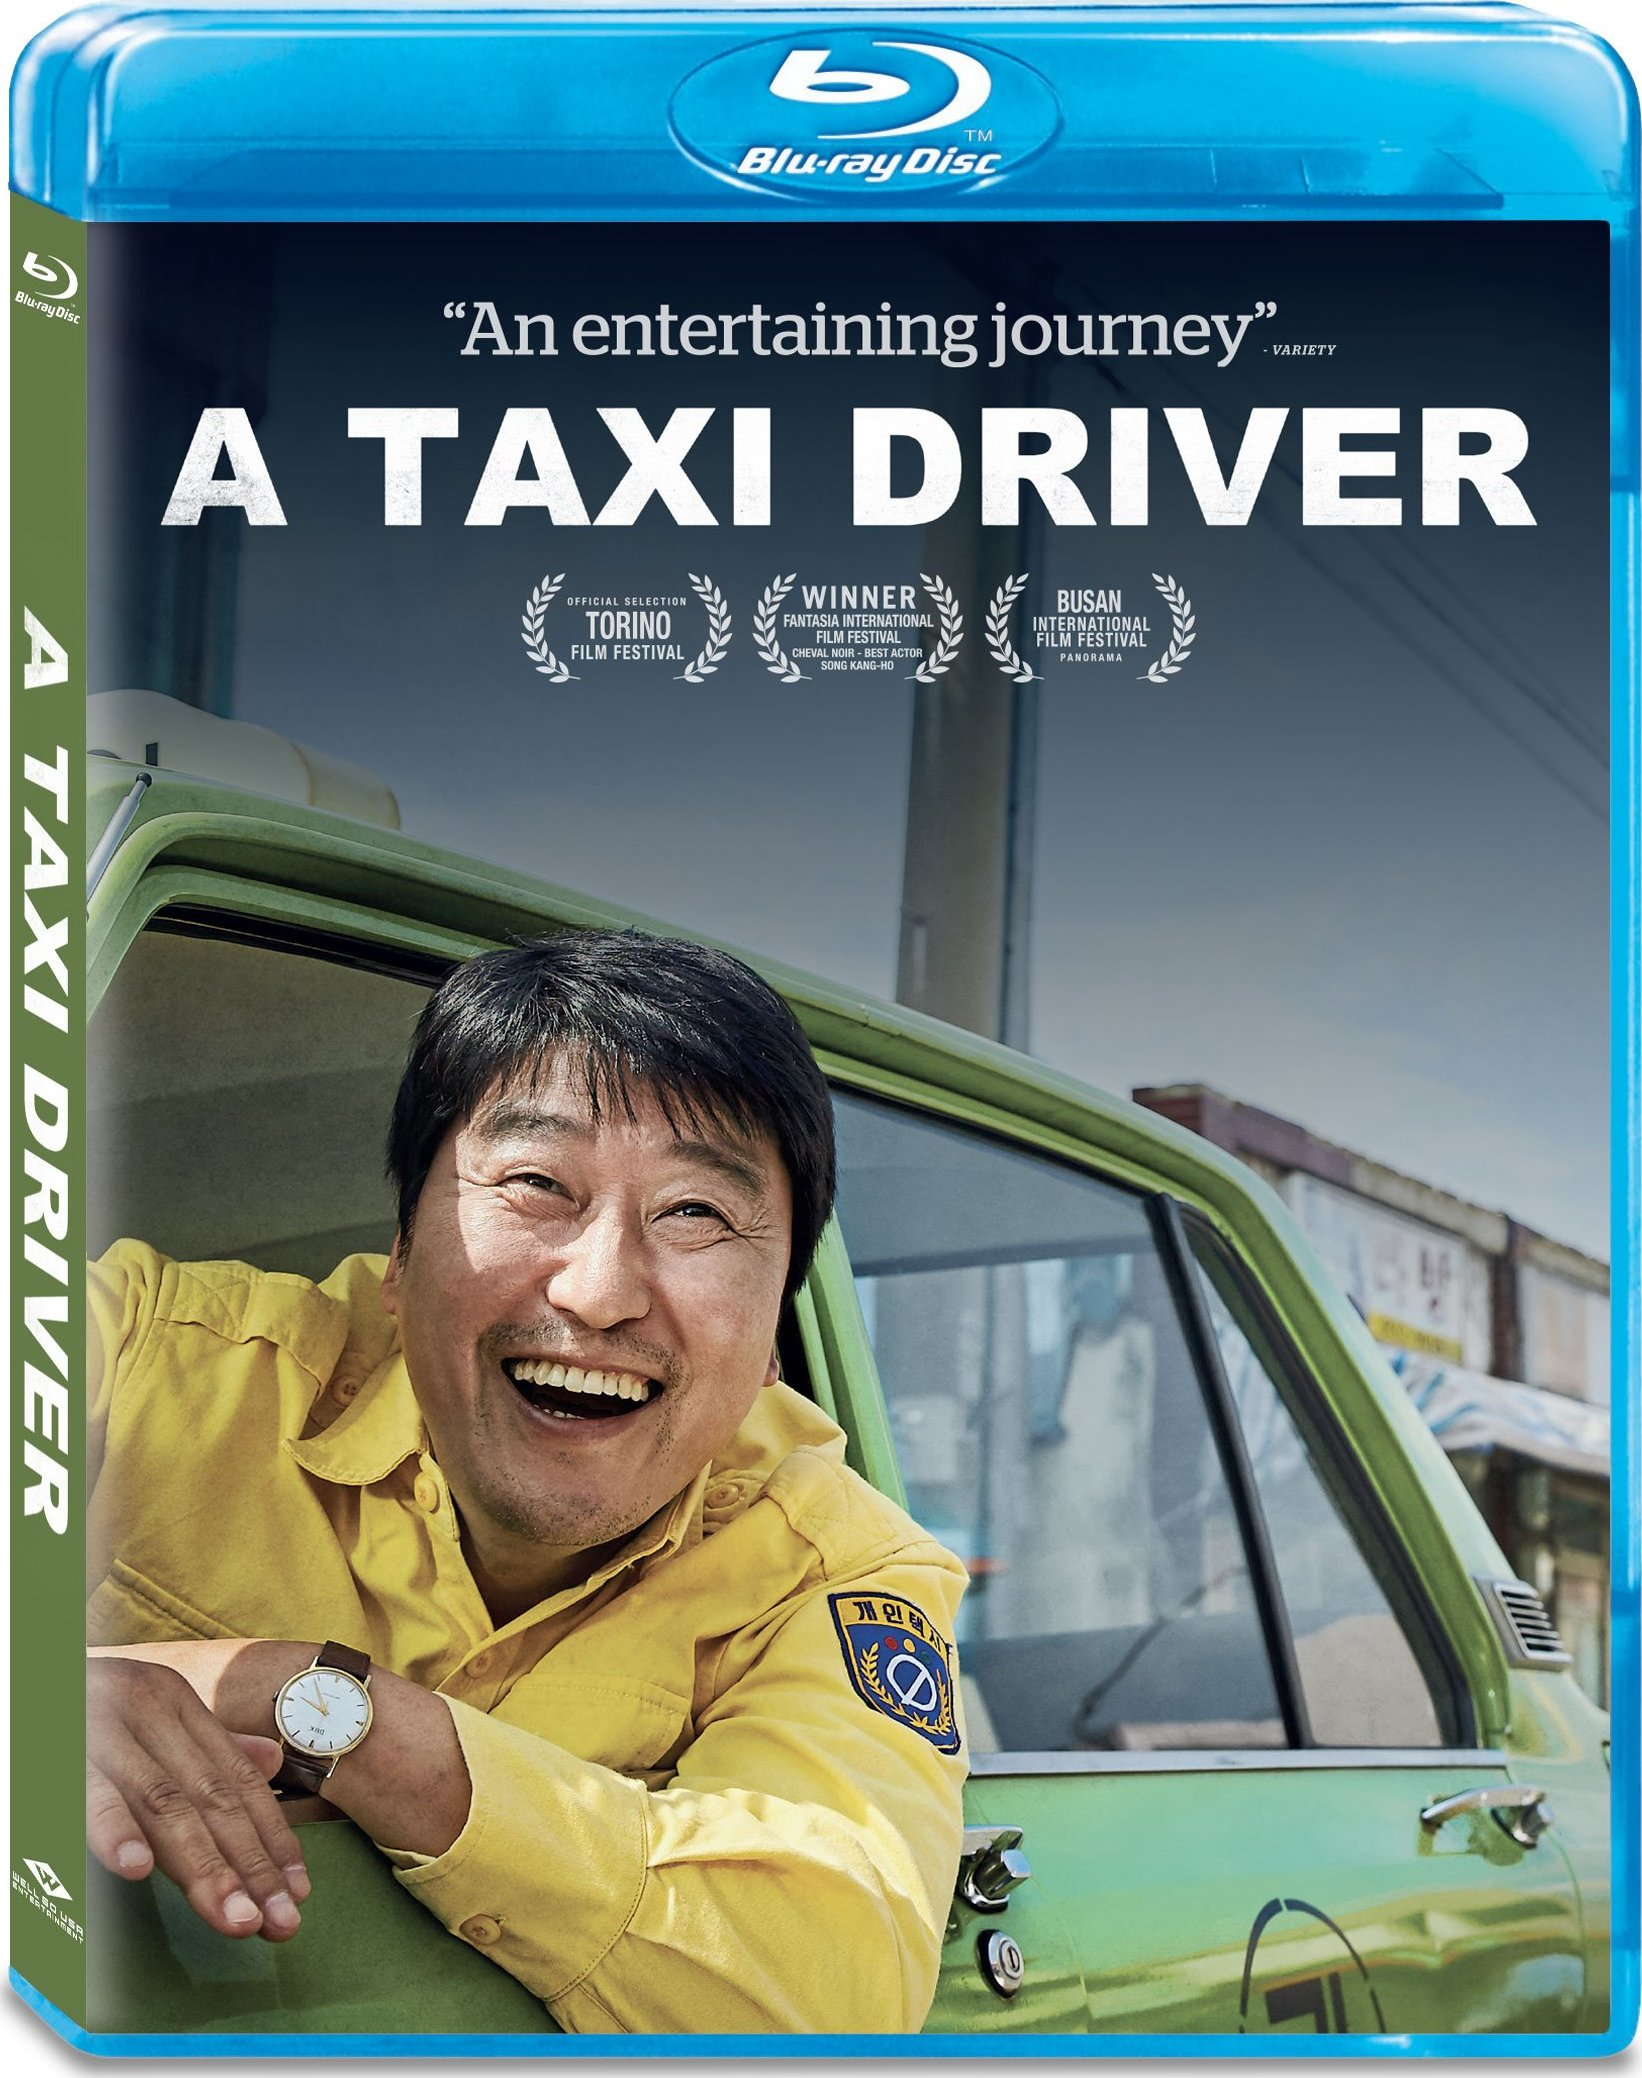 A Taxi Driver (2017) Blu-ray